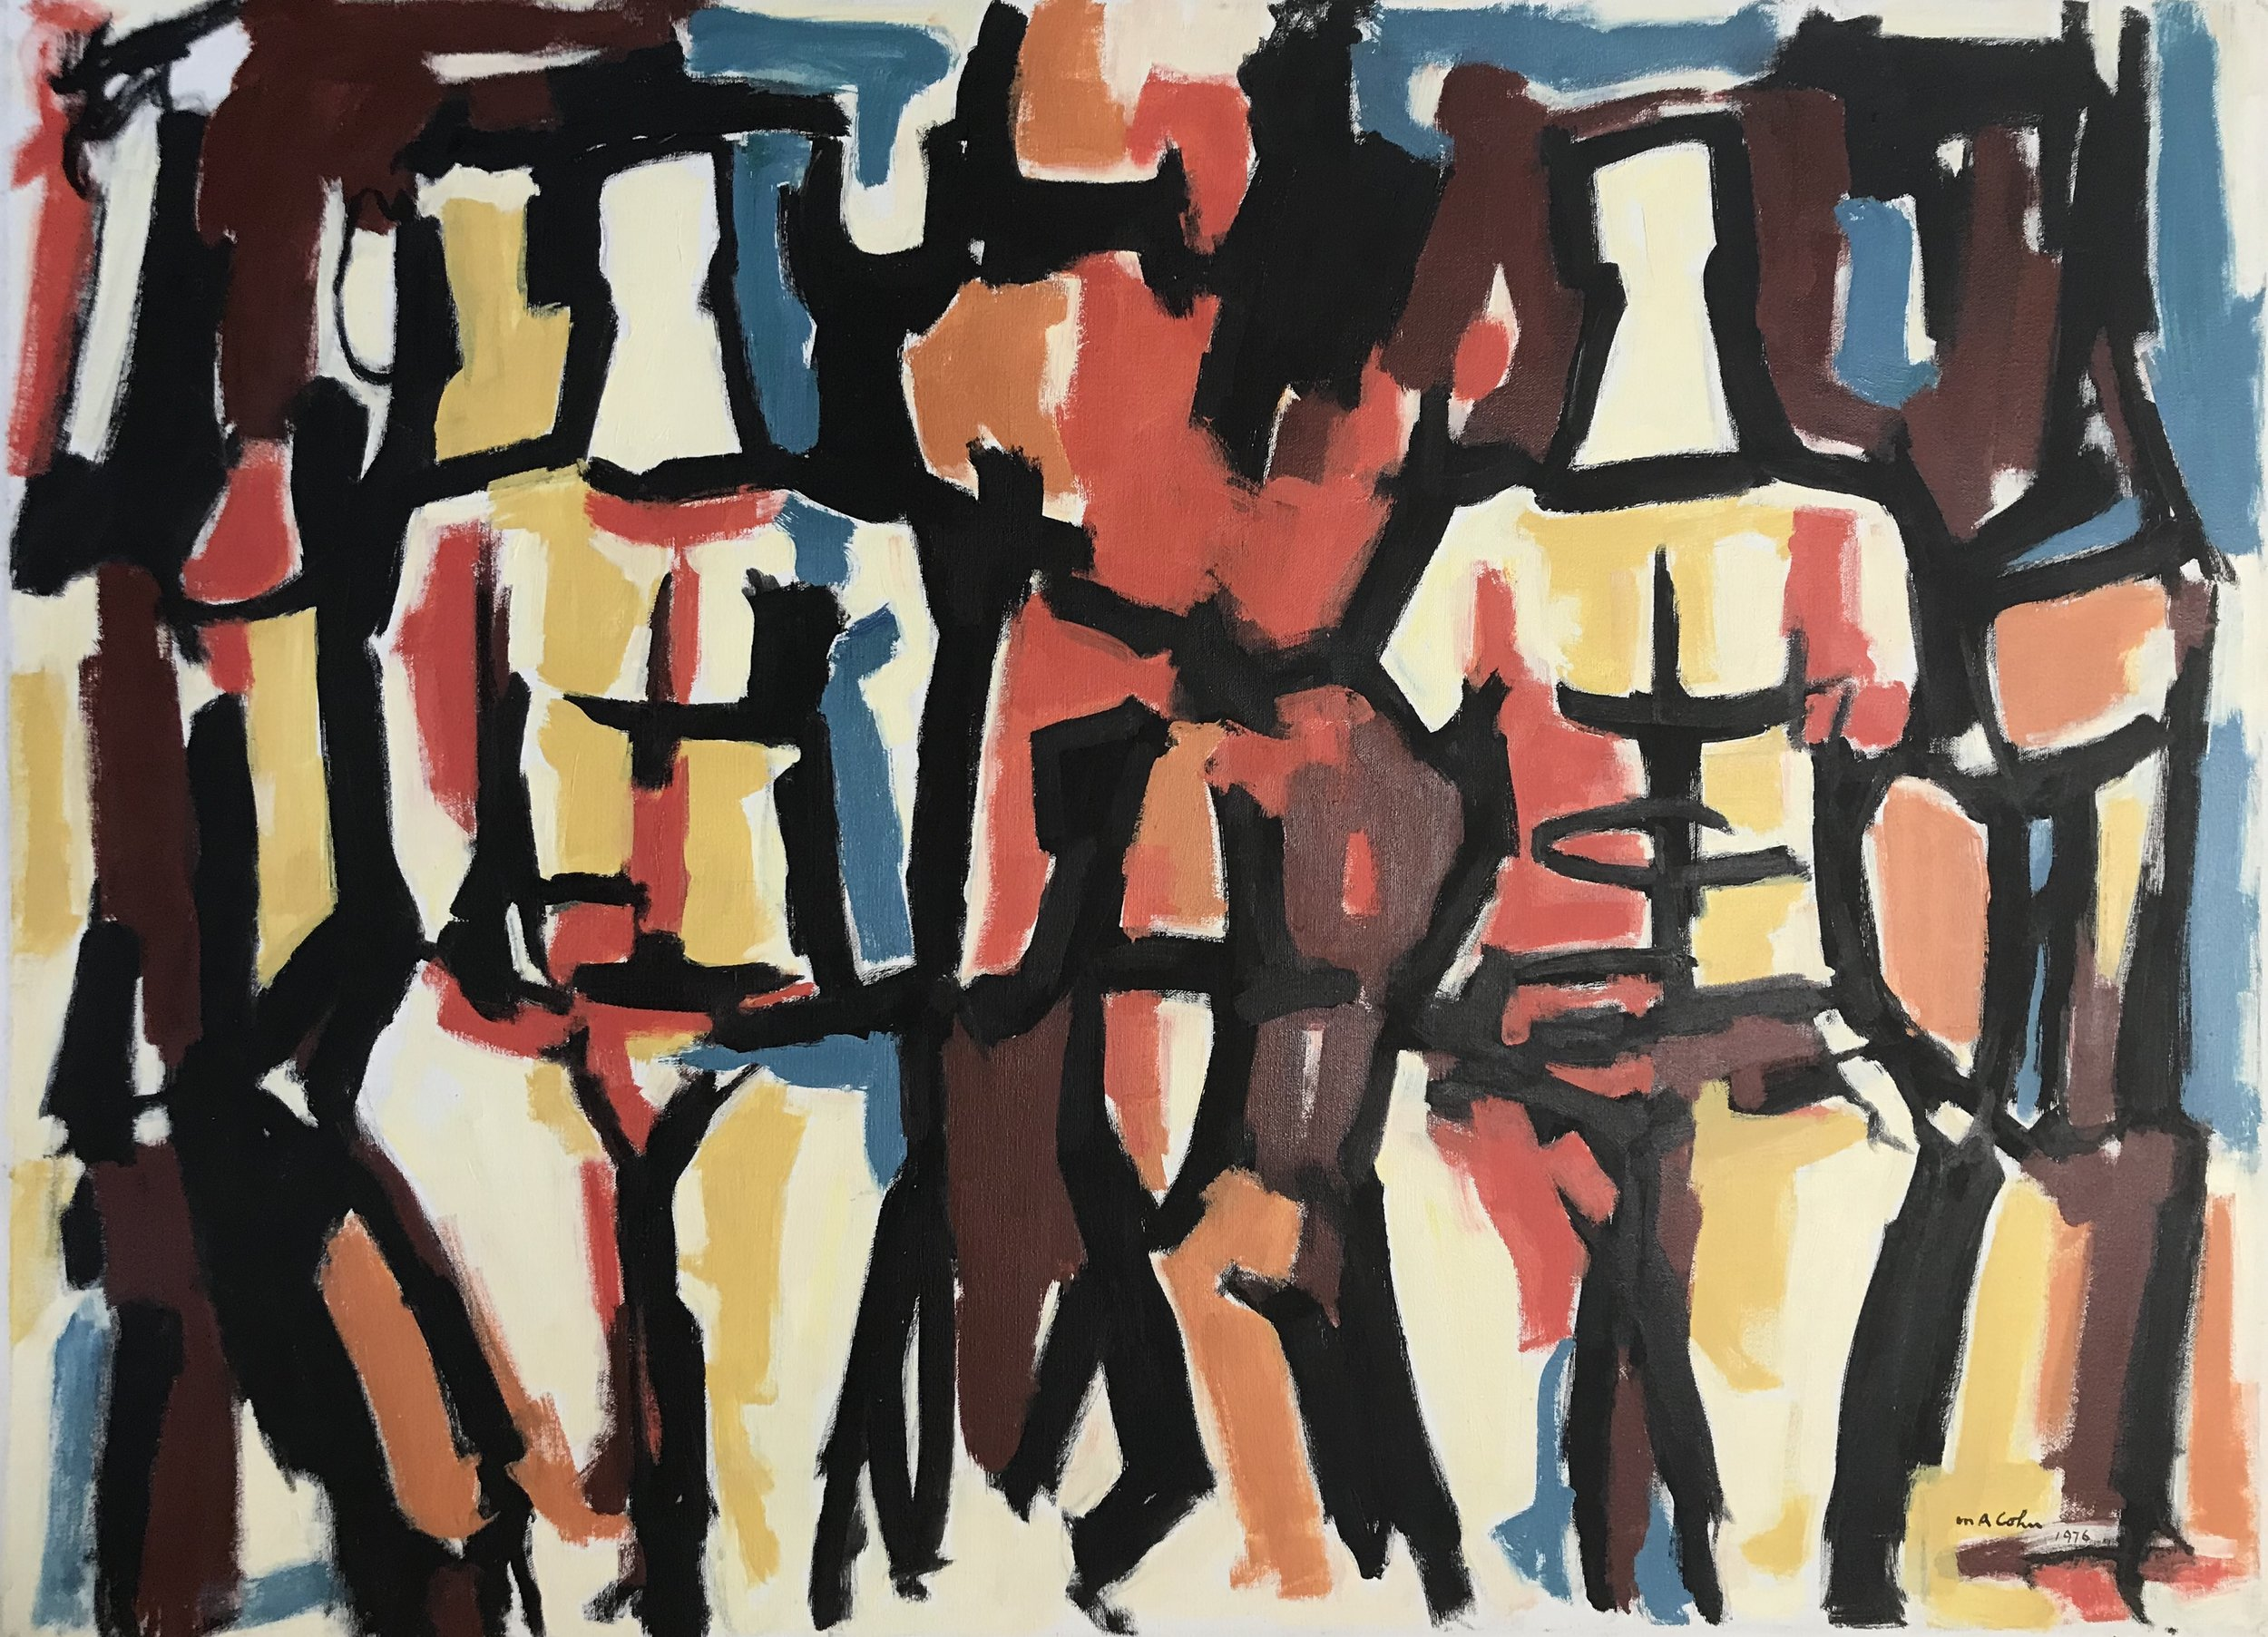 "Two Abstract Figures 636-1976 by Max Arthur Cohn 28"" x 38"""" Oil on Canvas 1976"